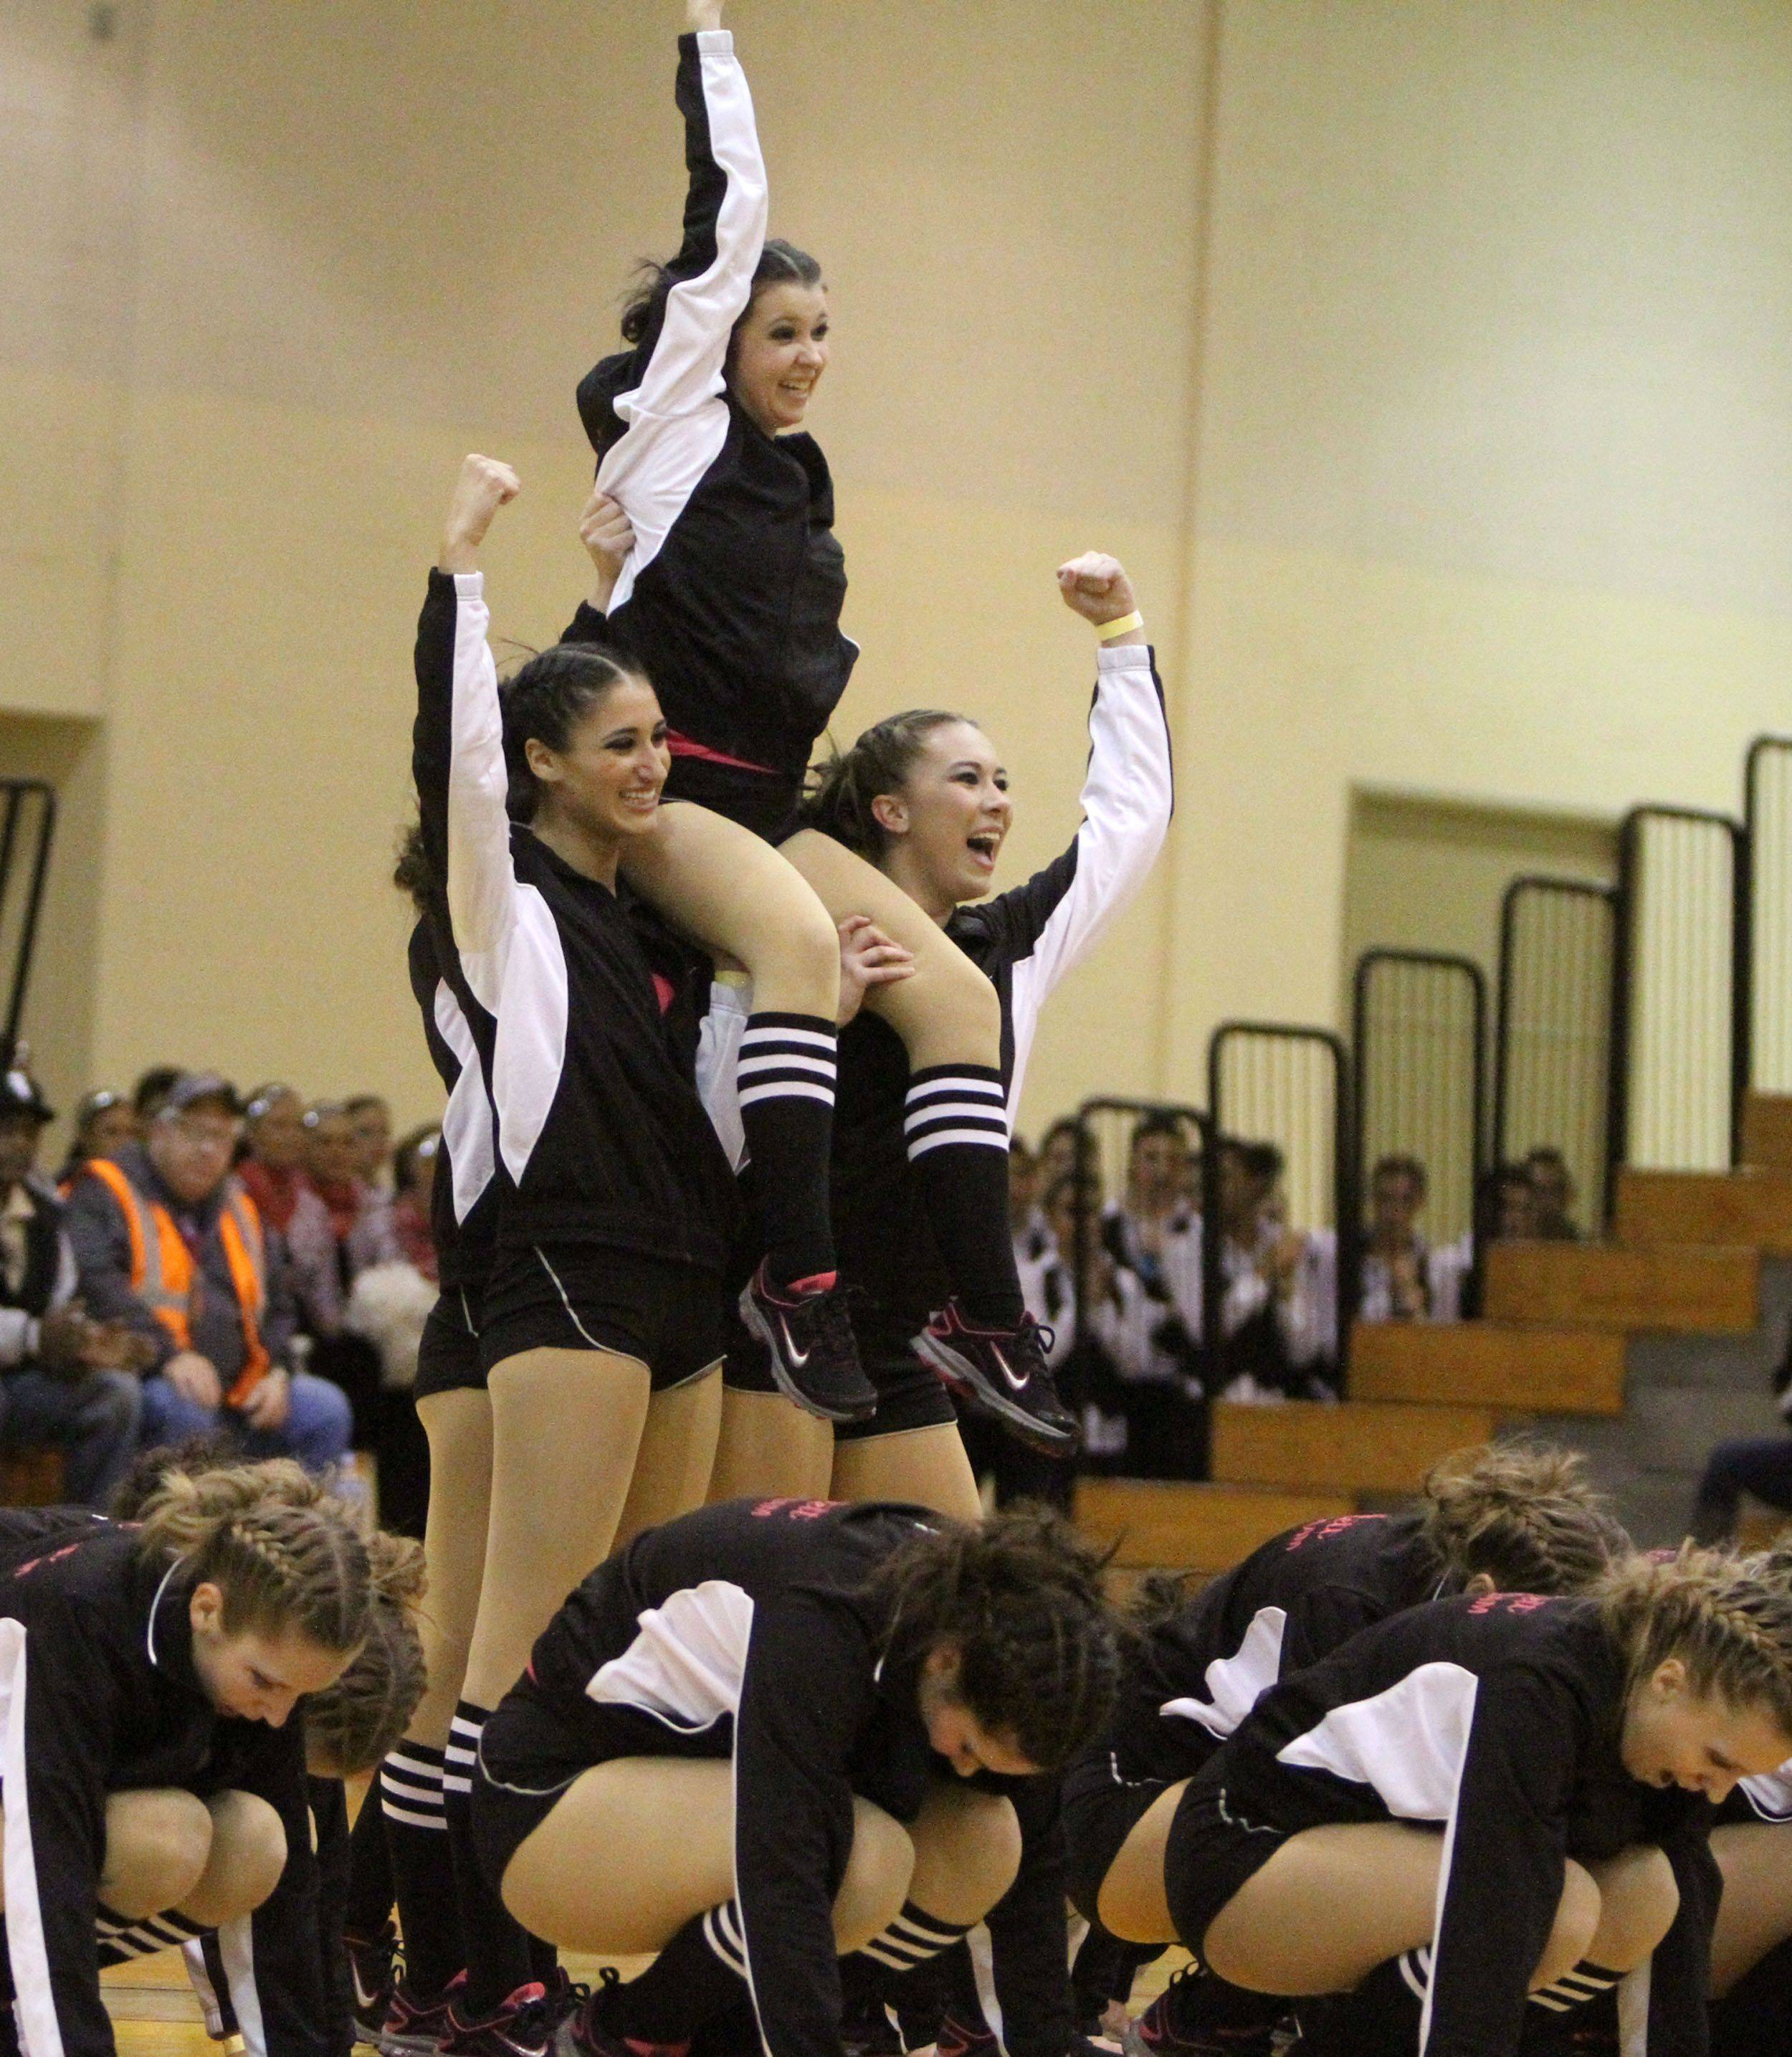 Dancers from Bartlett compete in the hip hop category Sunday during the Batavia Dance Classic at Batavia High School.